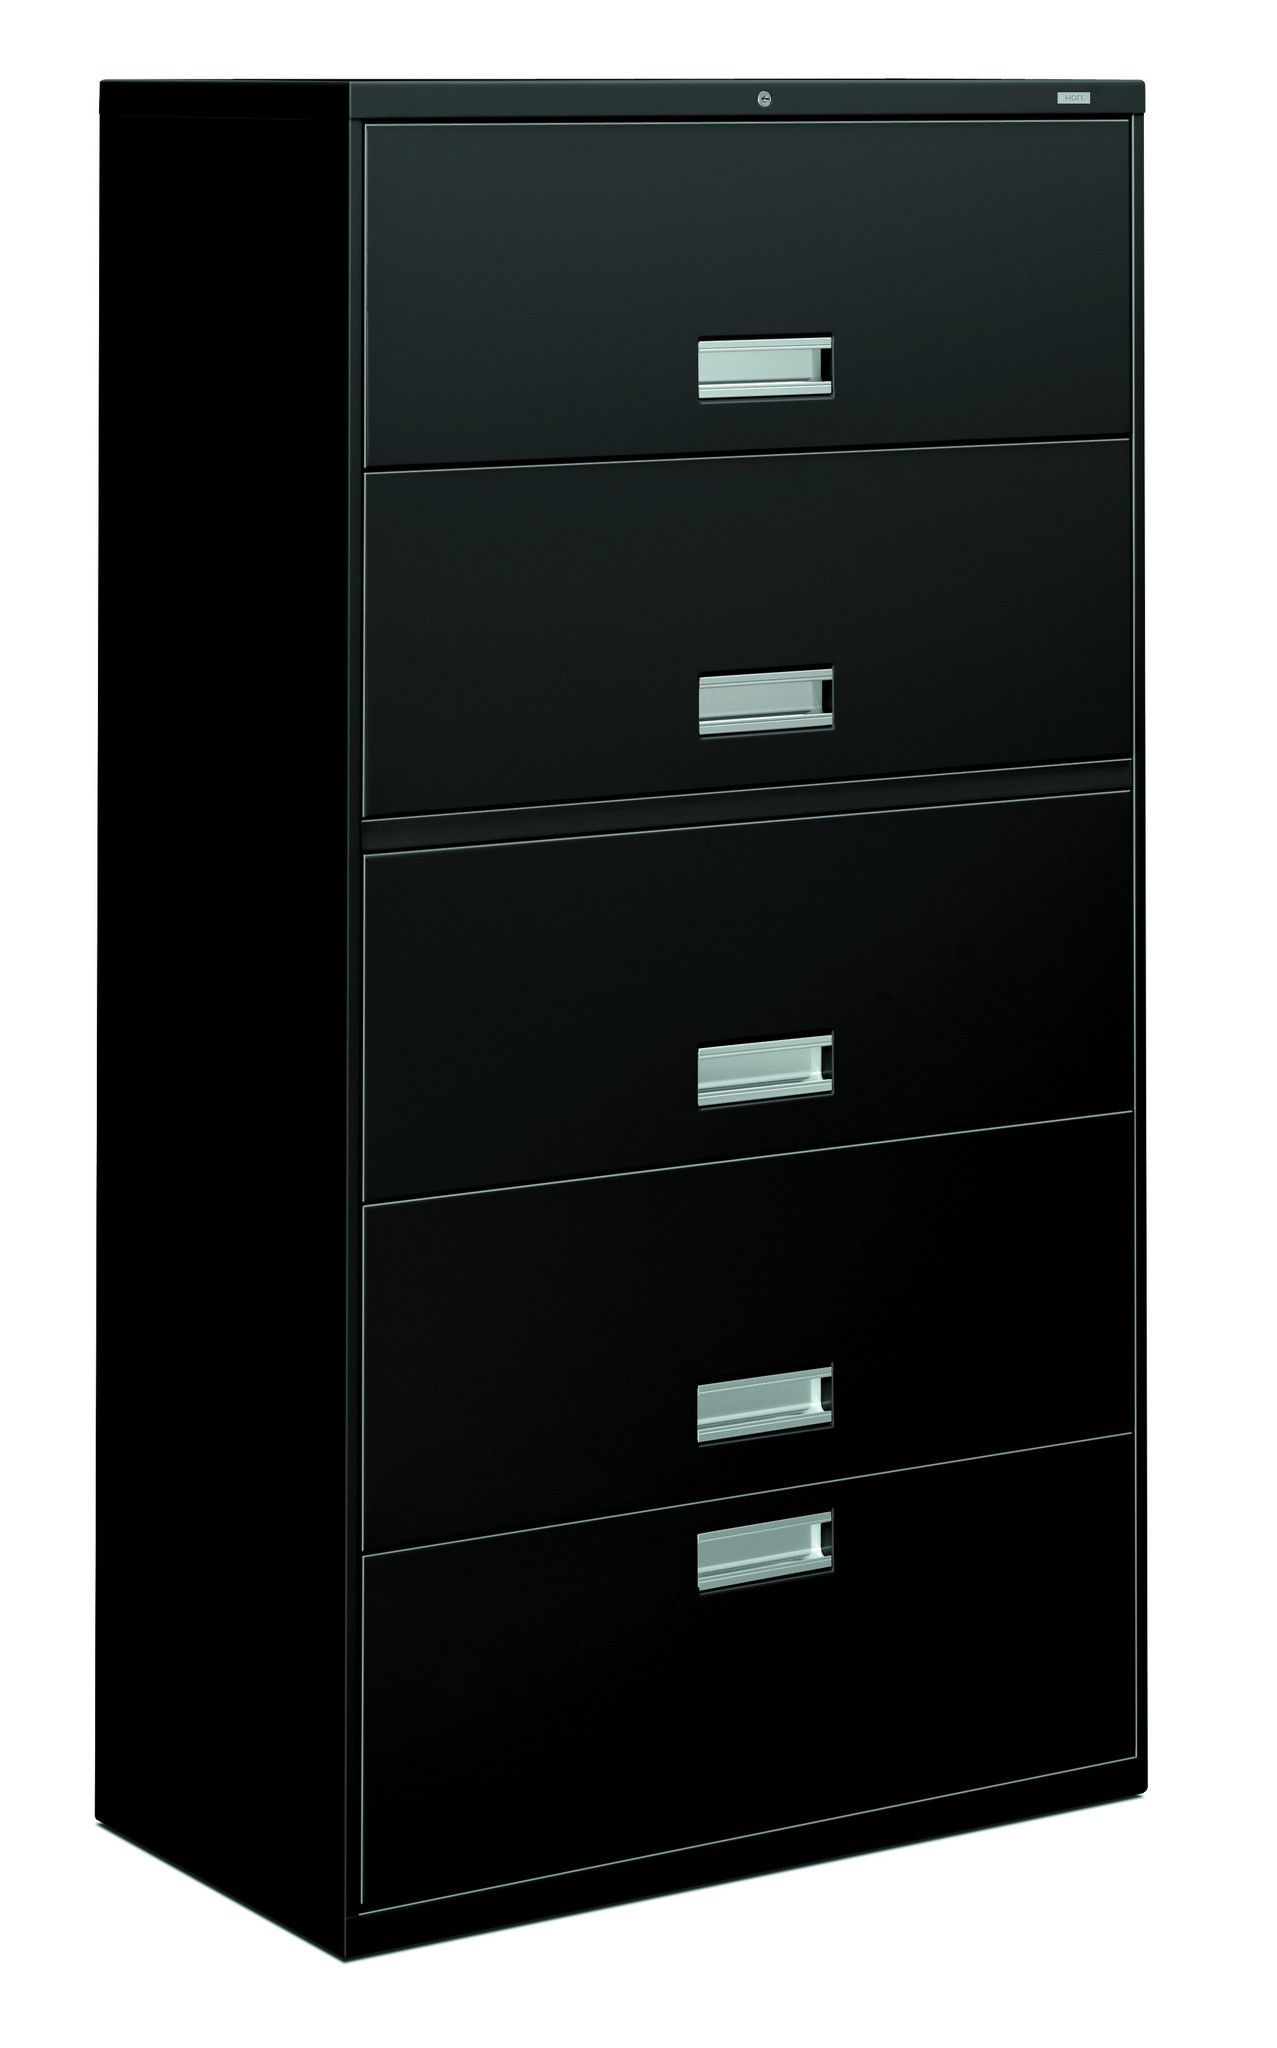 Hon Brigade 600 Series Lateral File 1 Drawer 4 Roll Out Shelves 36 Wide With Images Home Office Filing Cabinet Roll Out Shelves Lateral File